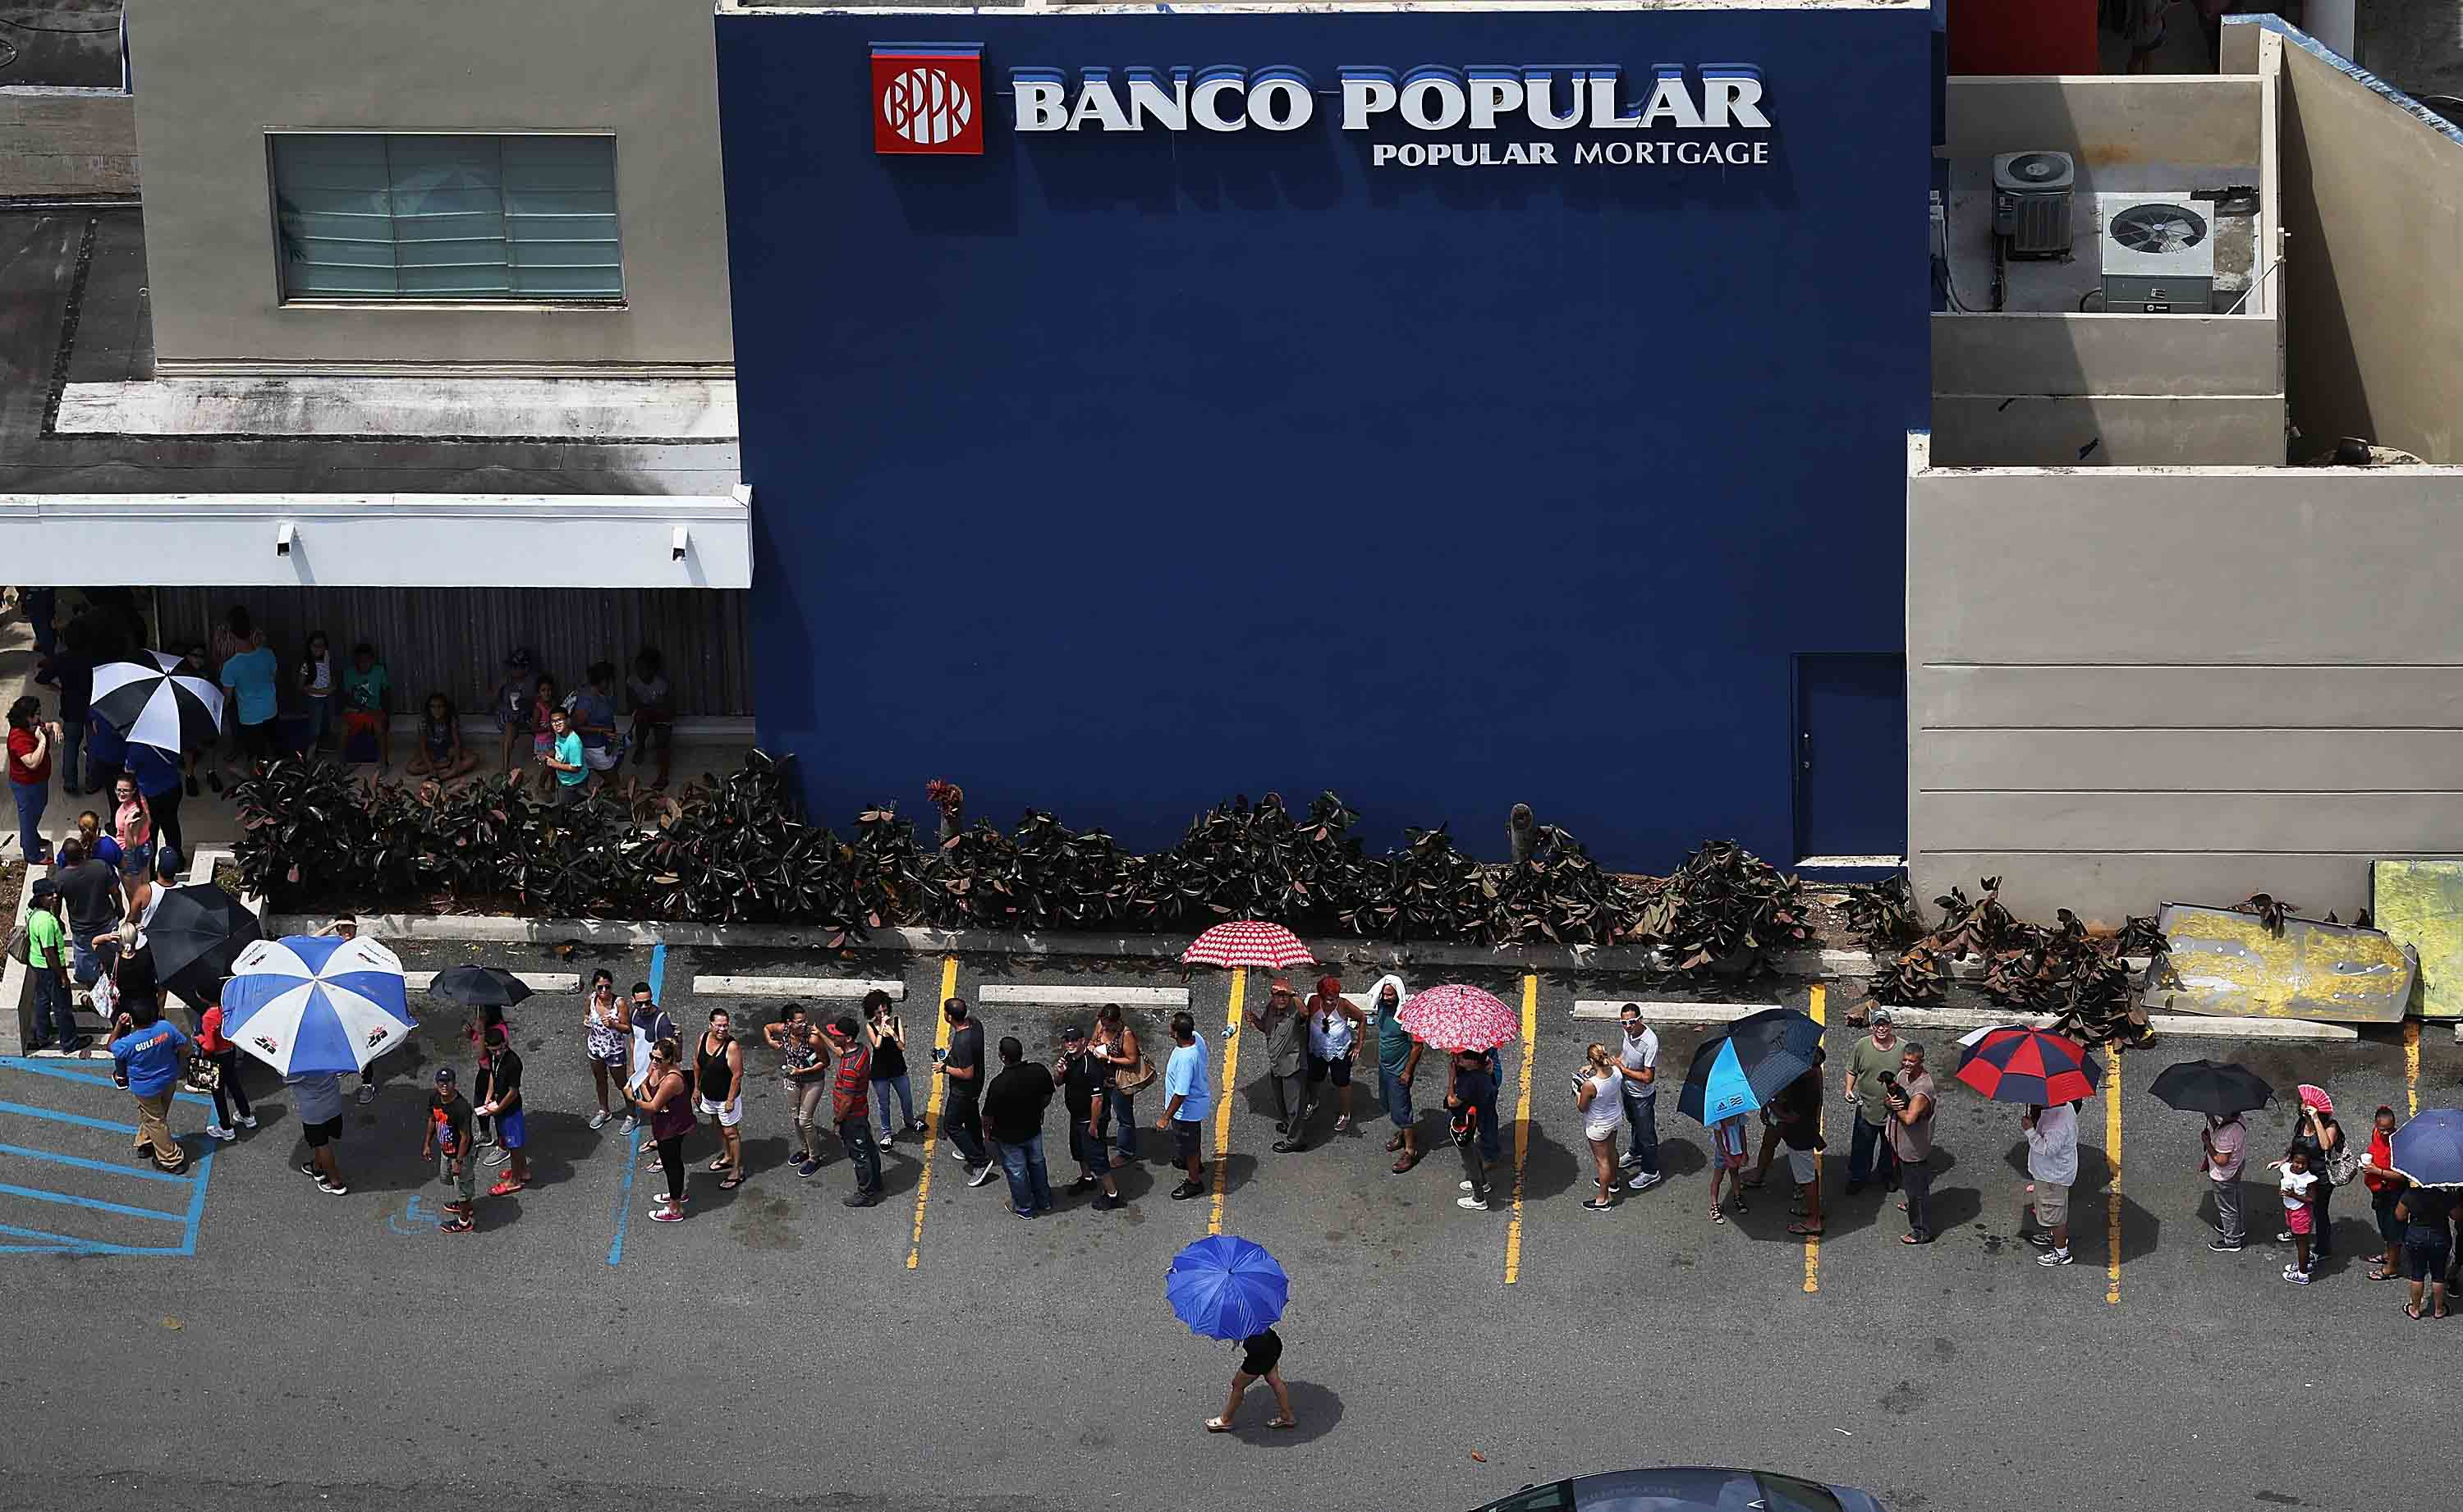 People wait in line at a bank as they deal with the aftermath of Hurricane Maria on September 25, 2017 in San Juan Puerto Rico.